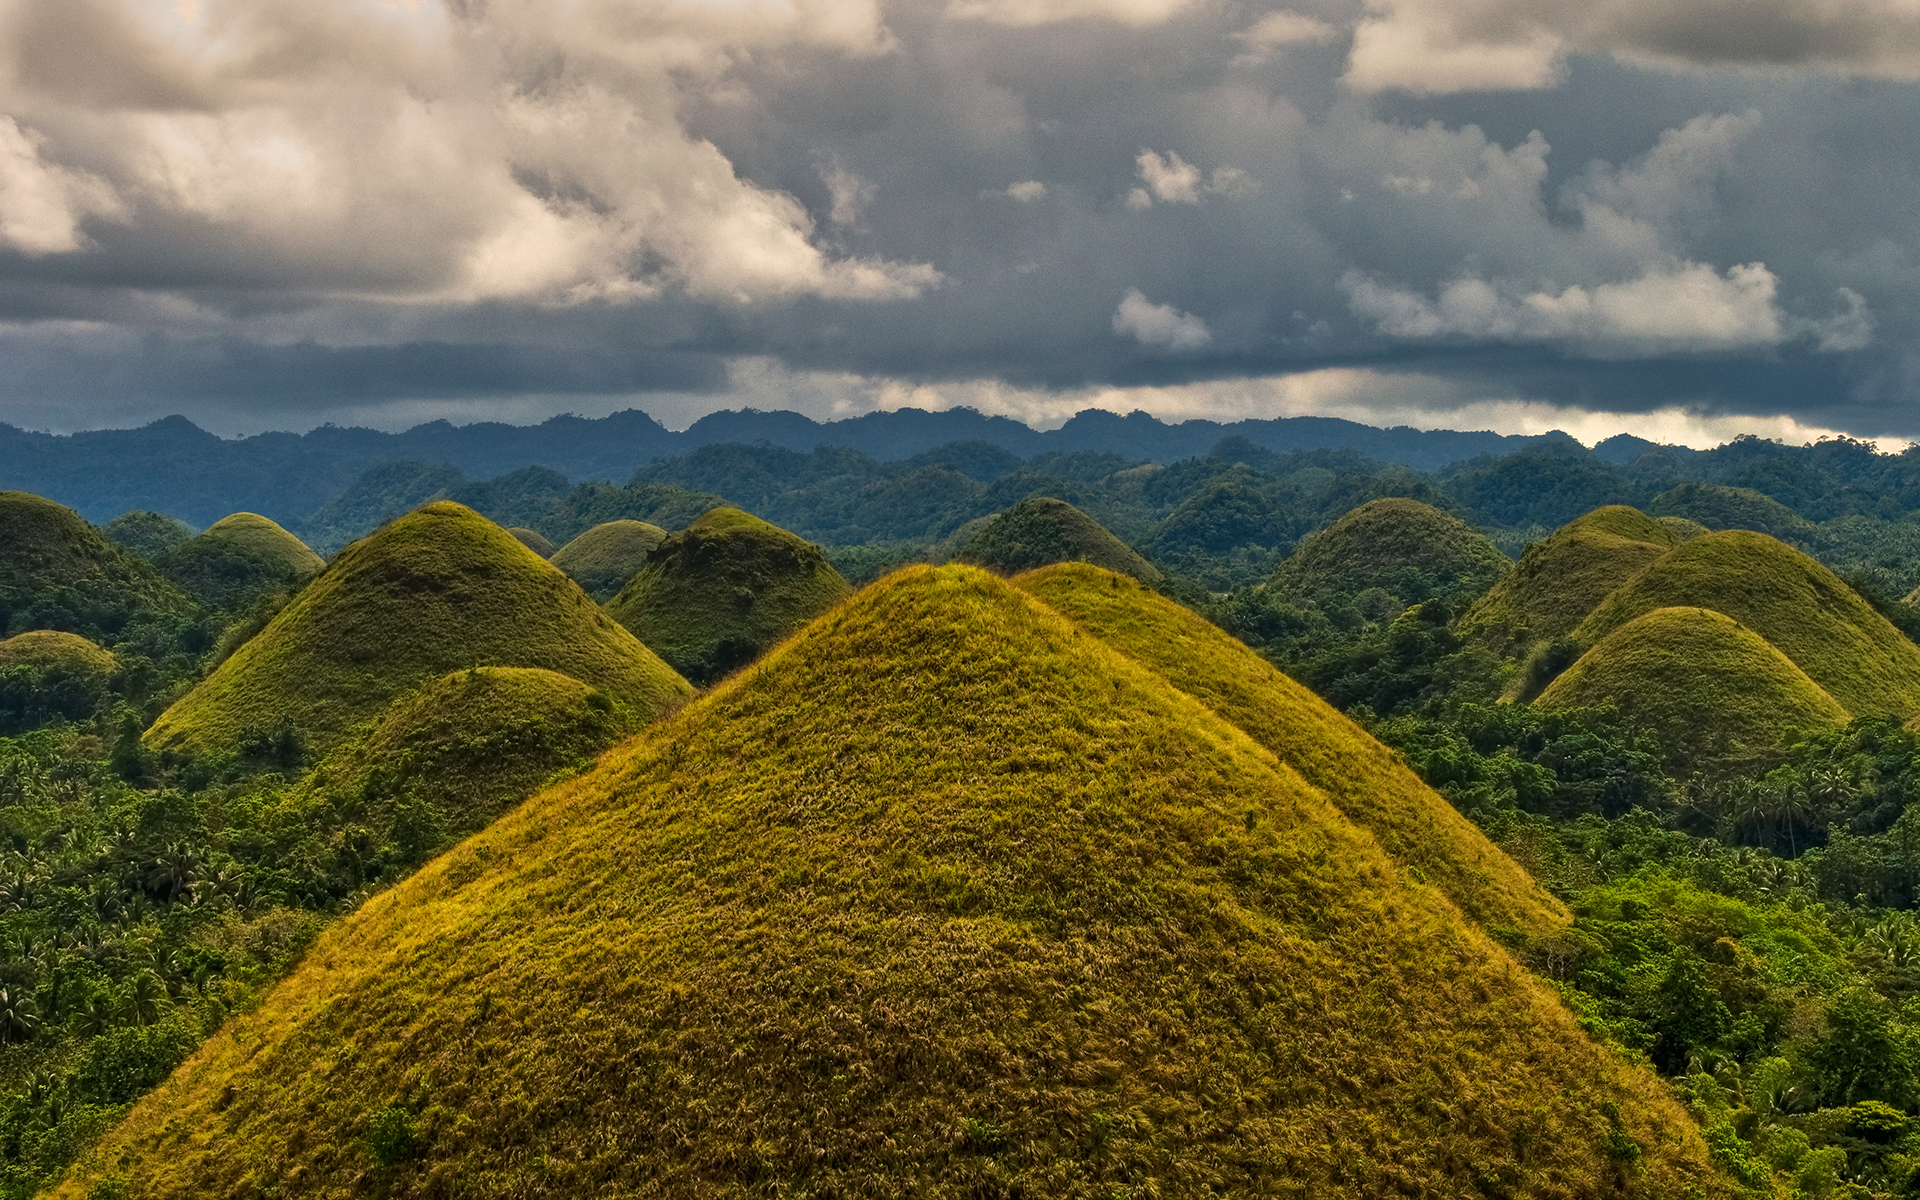 Chocolate Hills Hd Images Galleries With A Bite